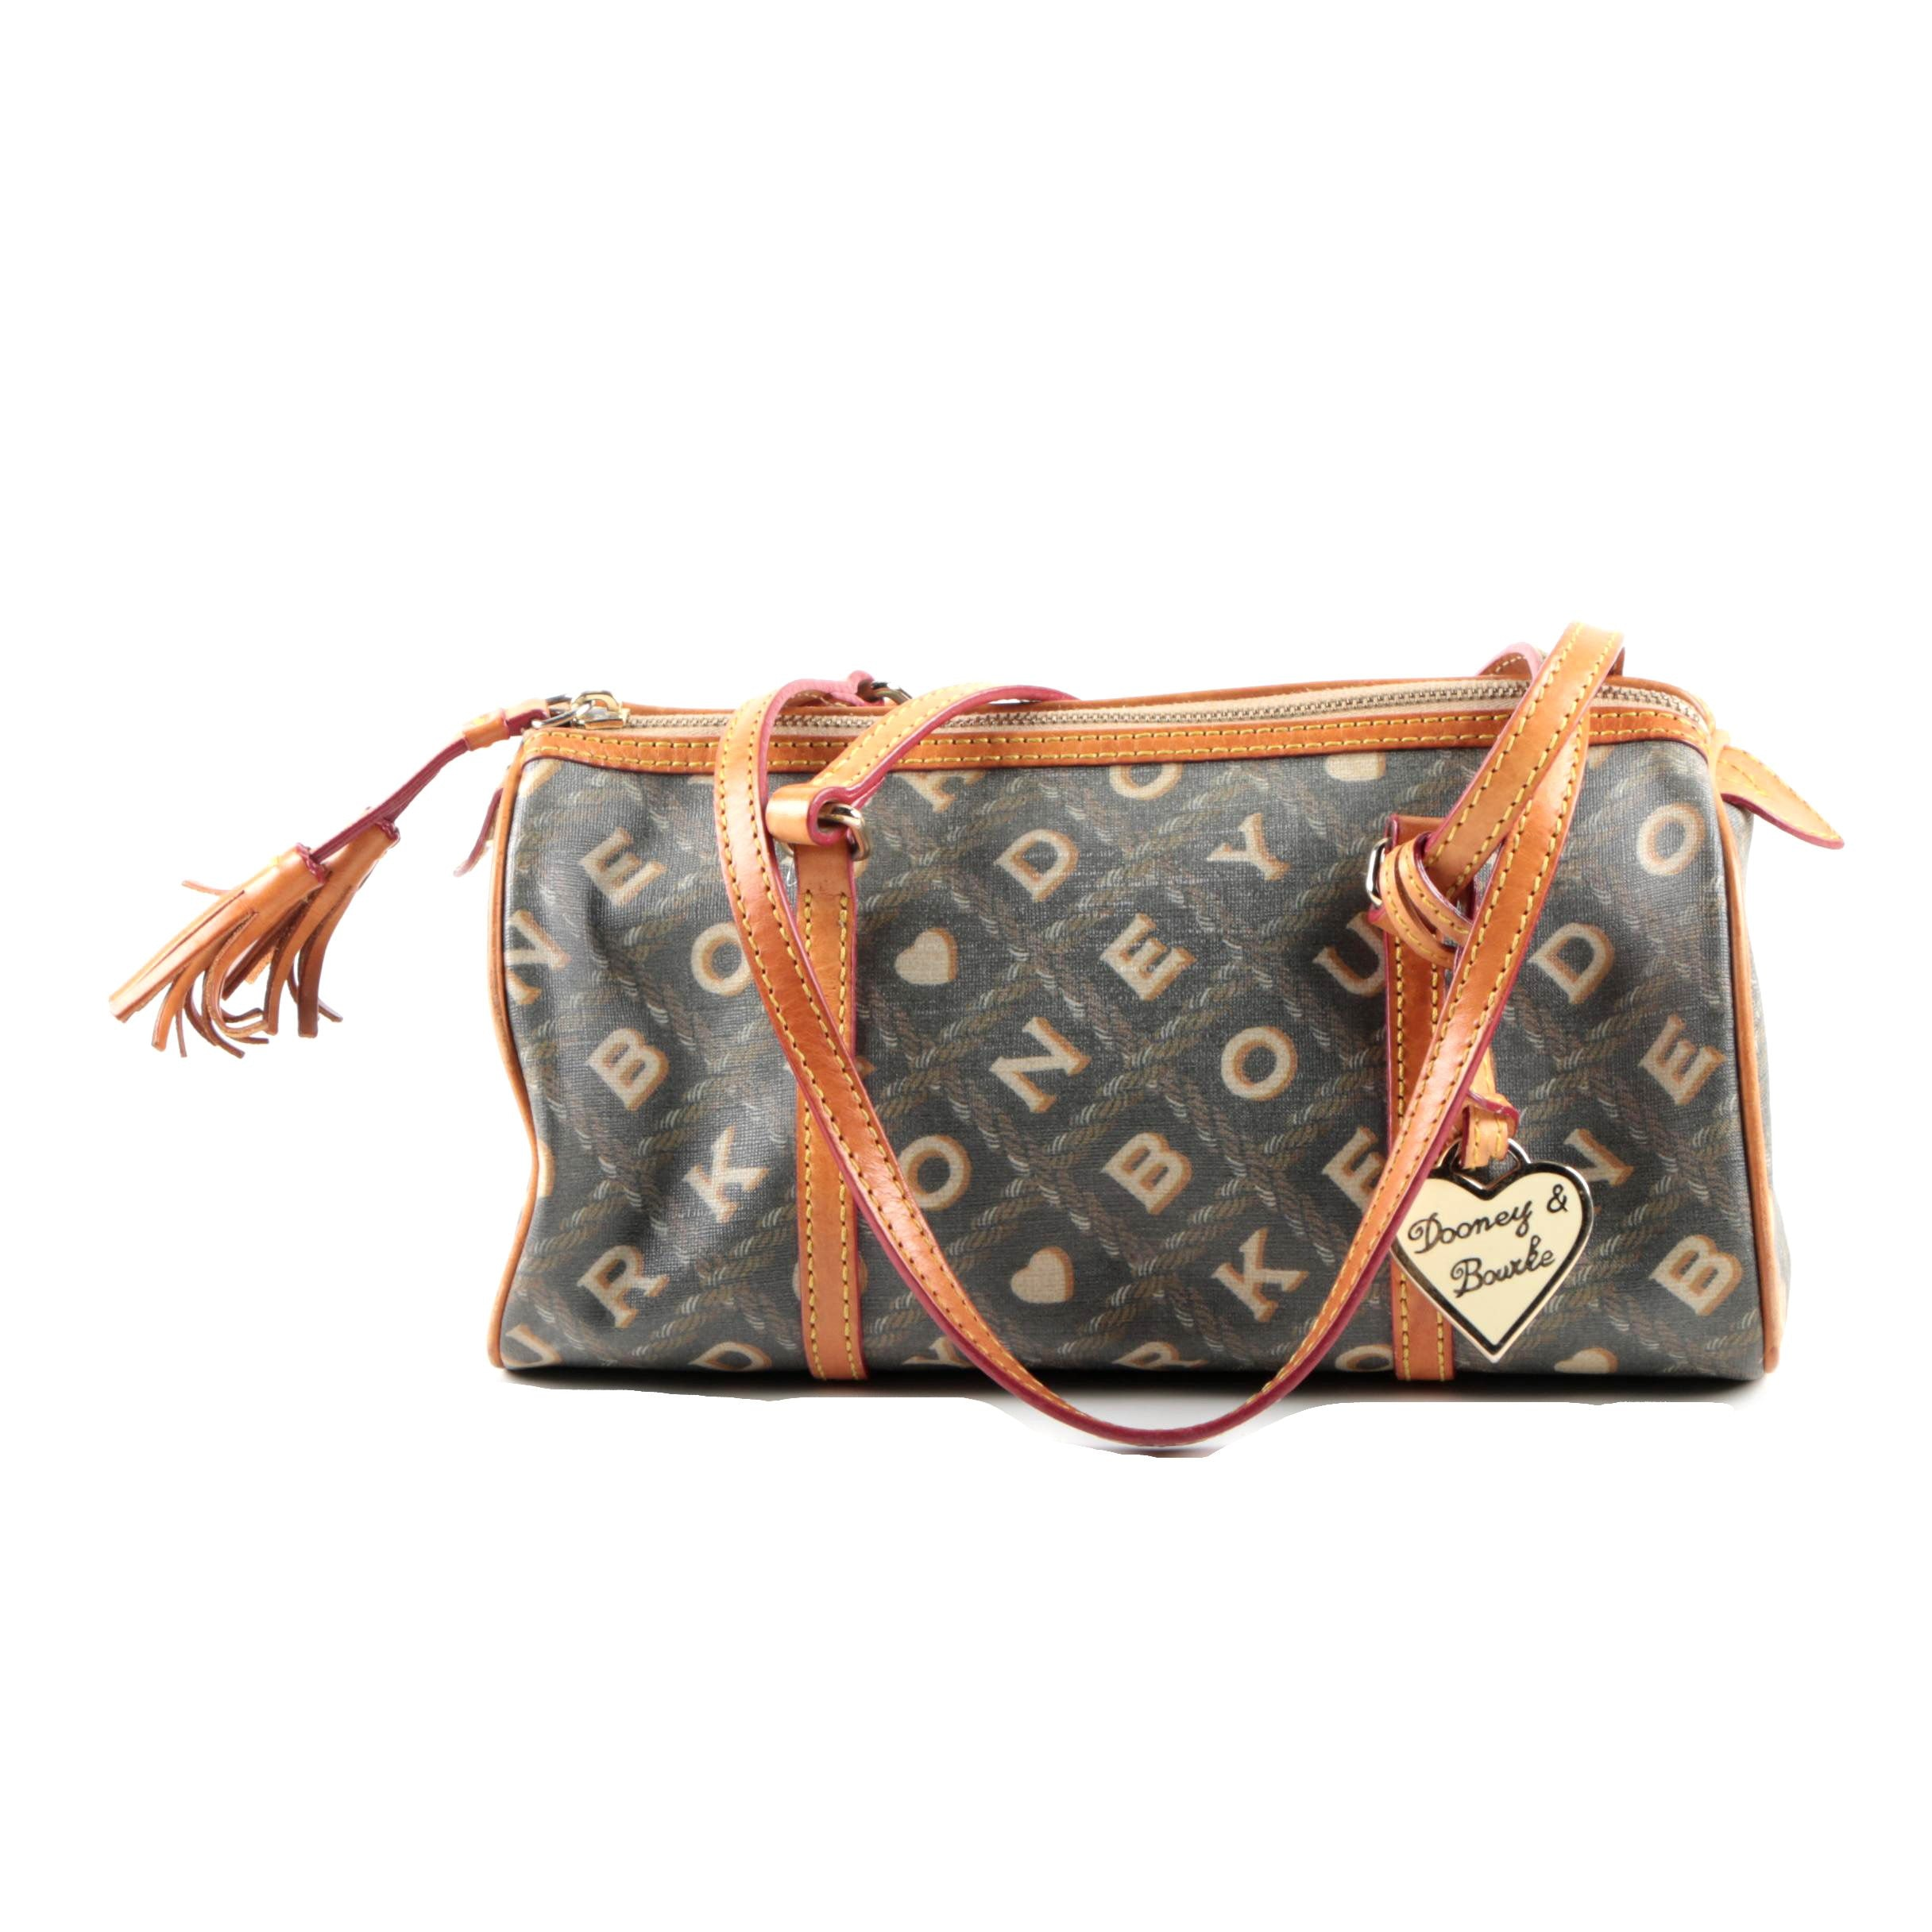 Dooney & Bourke Coated Canvas and Leather Satchel